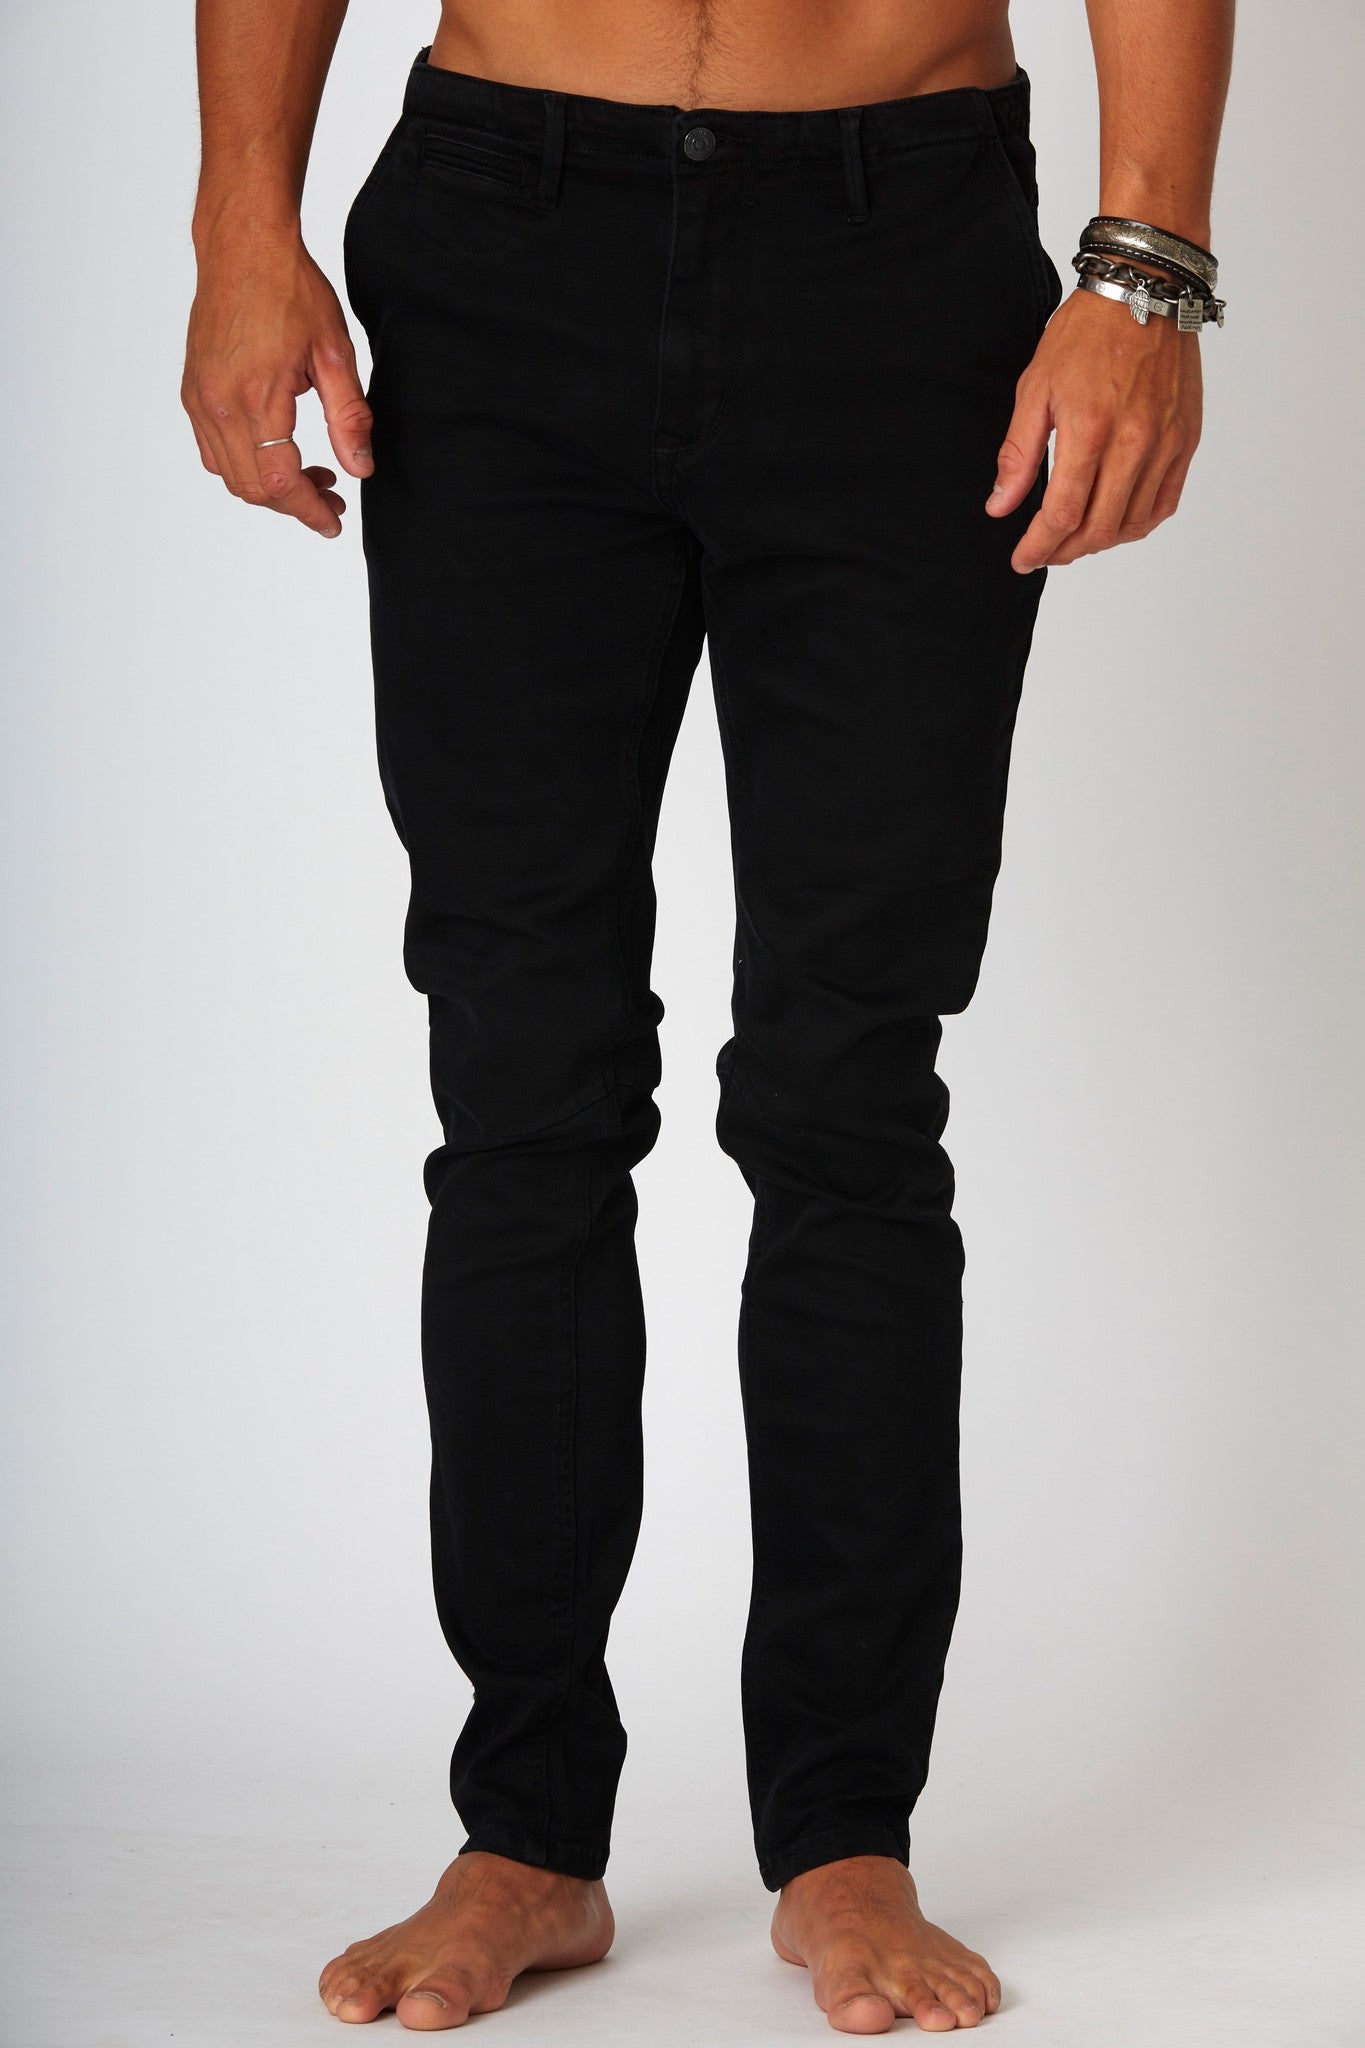 #2A27 Apostle Pants Crow Black - denimcolab